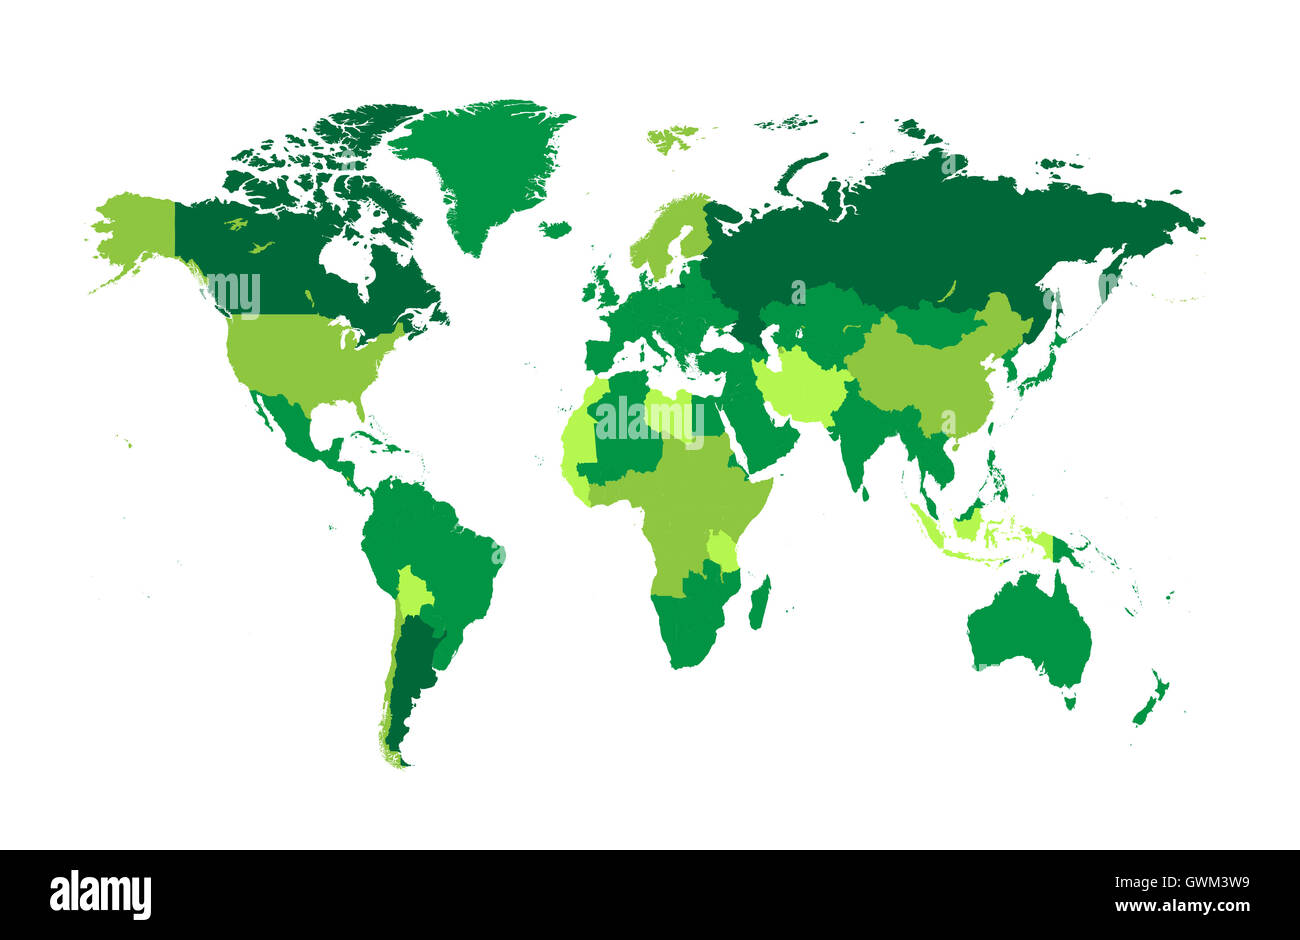 World map vector flat with countries green color stock photo world map vector flat with countries green color gumiabroncs Images